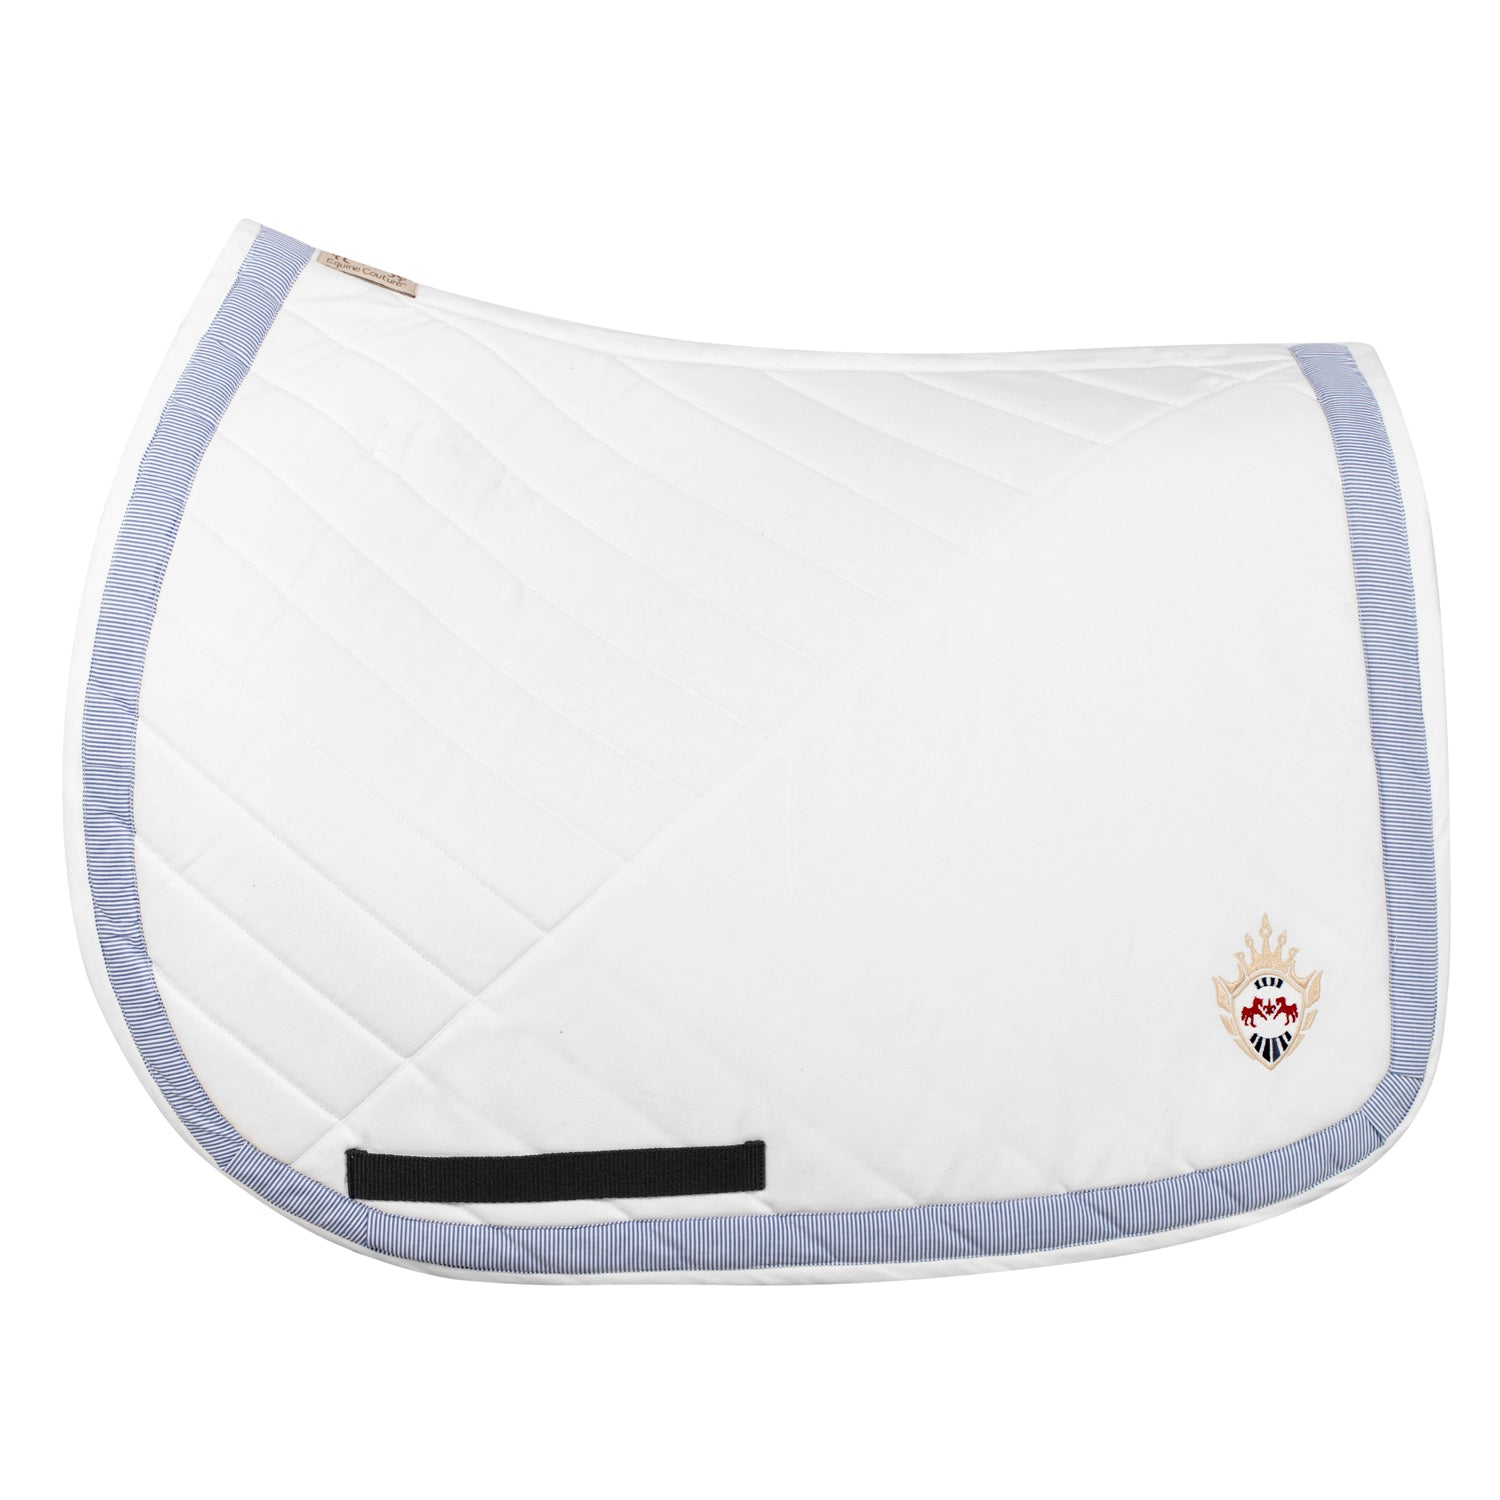 Equine Couture Angelo All Purpose Saddle Pad_1831